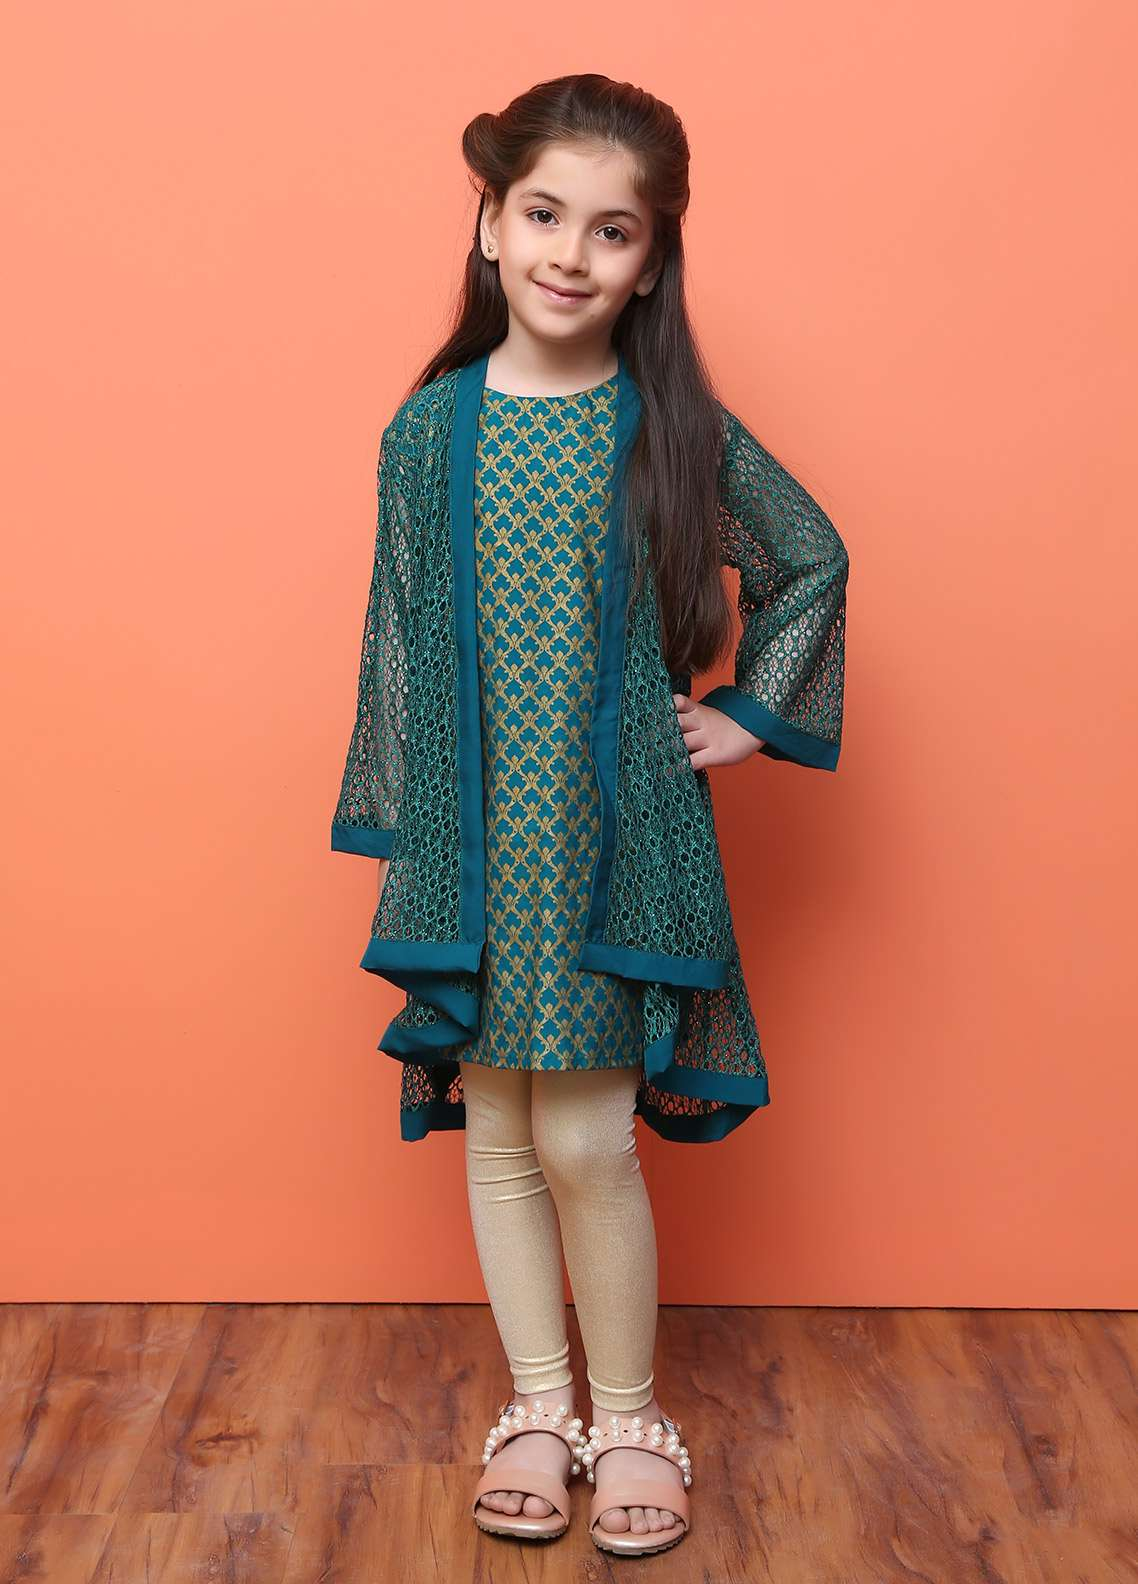 Ochre Chiffon Formal Kurtis for Girls - OFK 620 Green